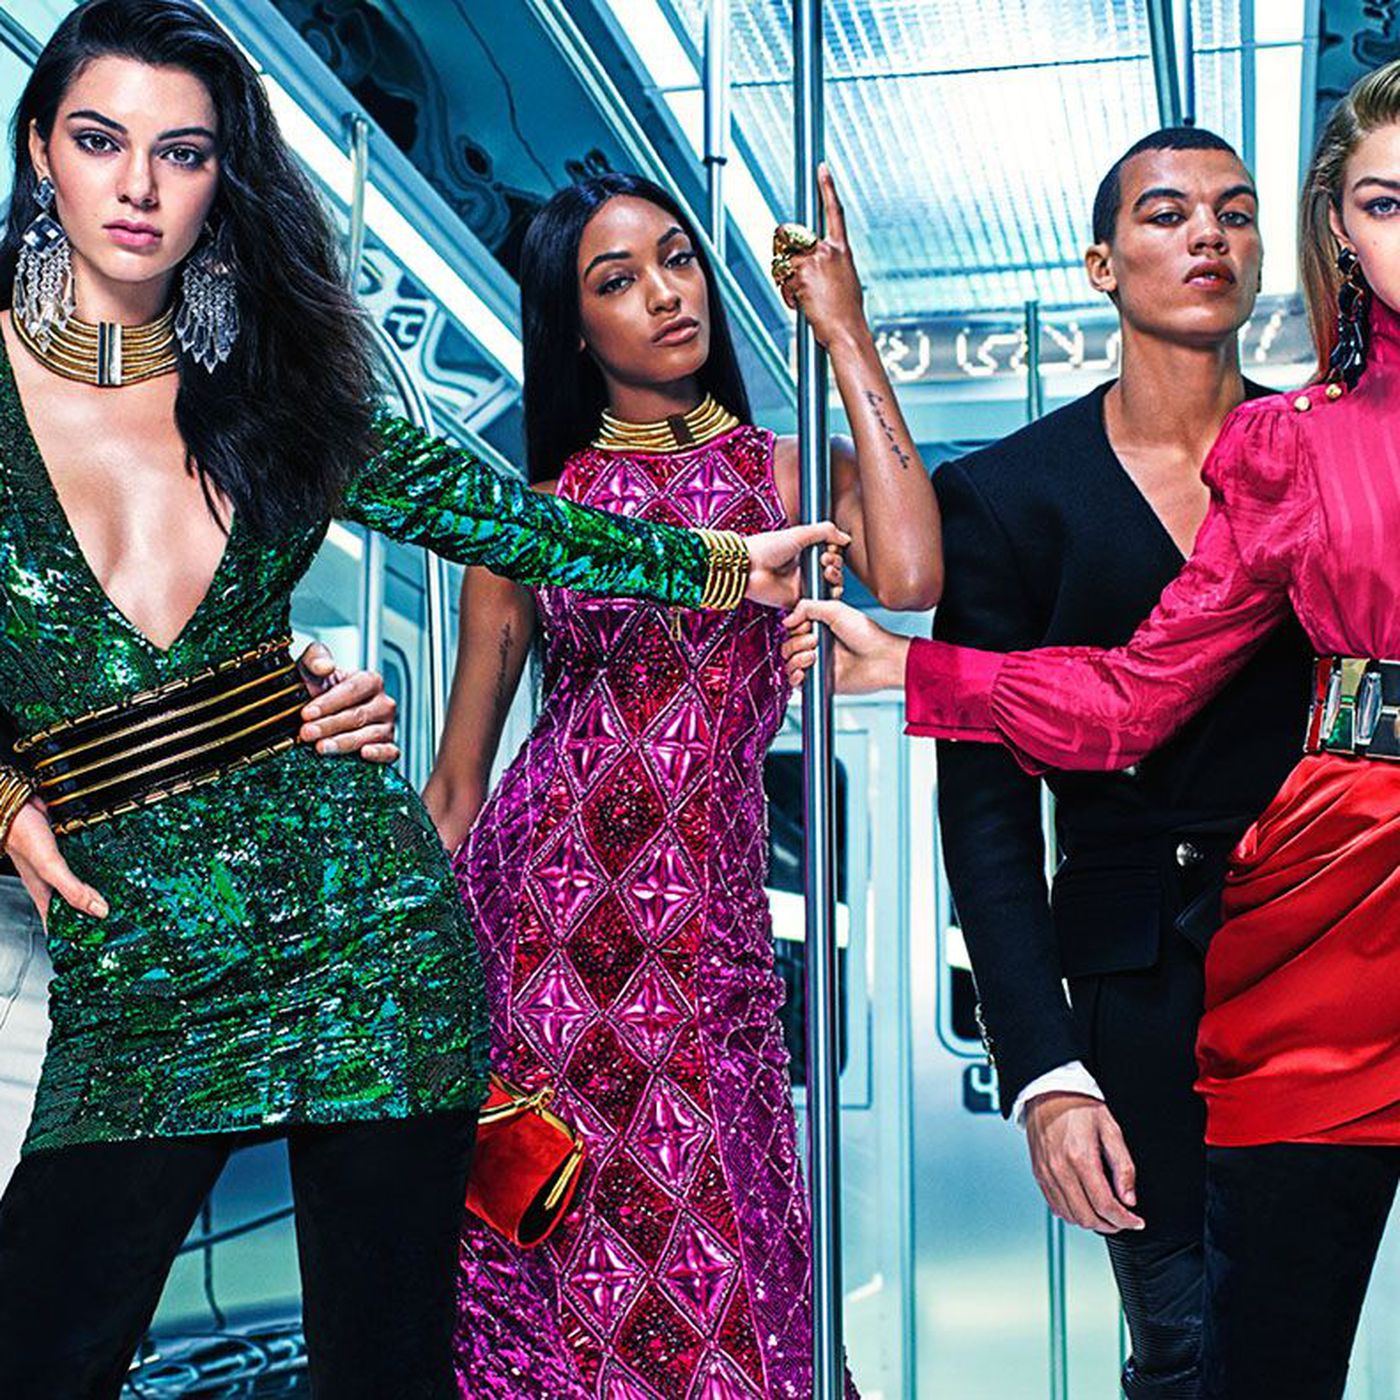 d82340a38b7ed H&M x Balmain: See the Entire 100+ Piece Collection With Prices - Racked